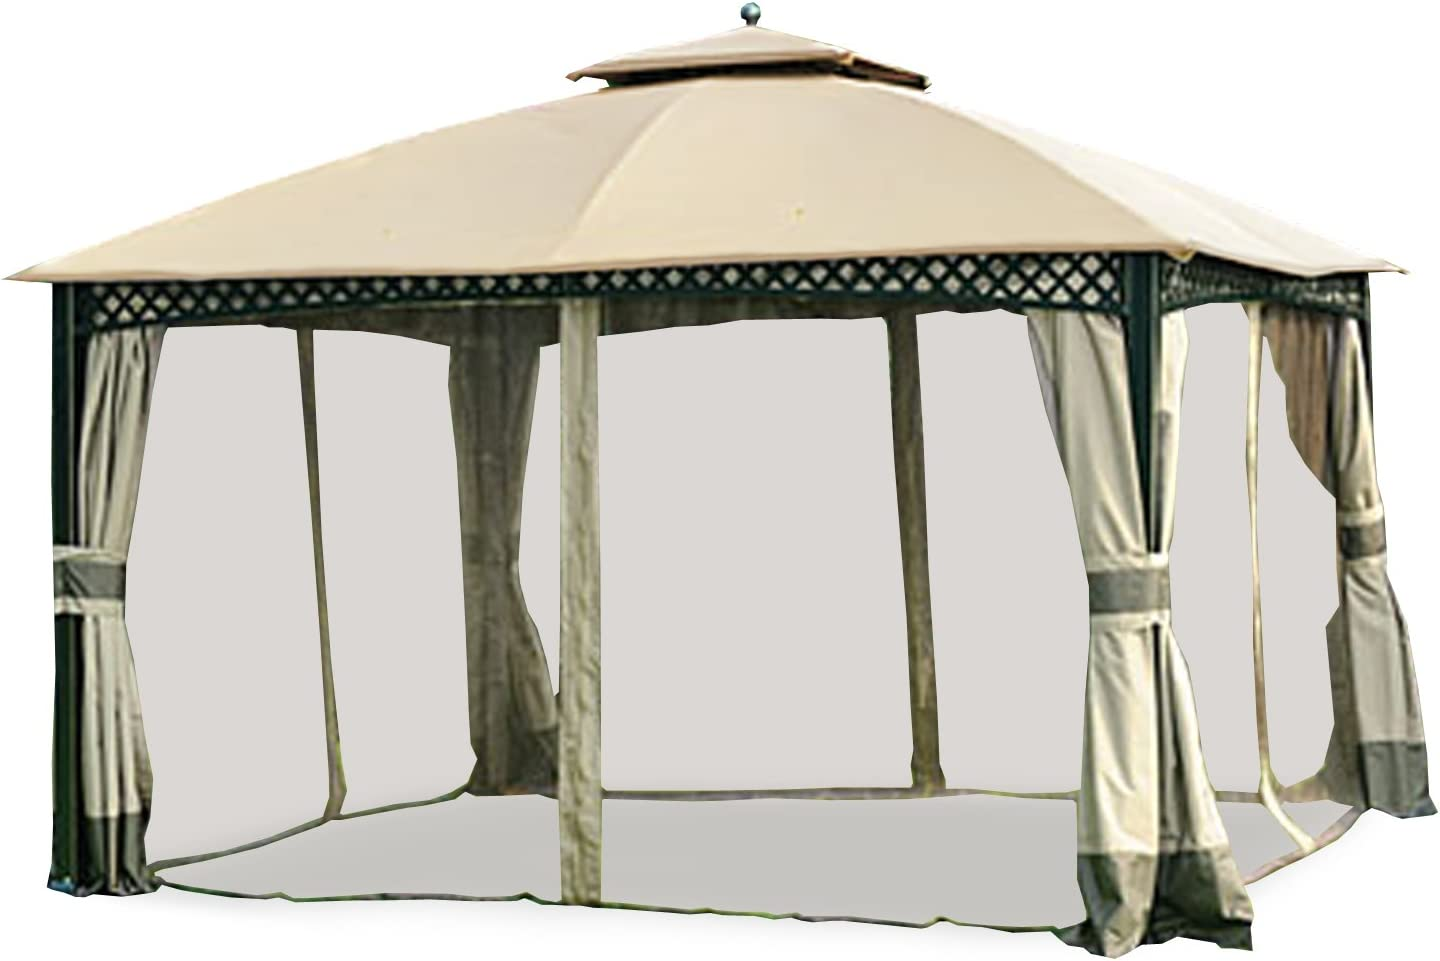 Garden Winds Replacement Canopy for Windsor Dome Gazebo - Riplock 350 Performance Fabric  sc 1 st  Amazon.com & Gazebos - Umbrellas Canopies u0026 Shade : Patio Furniture : Amazon.com